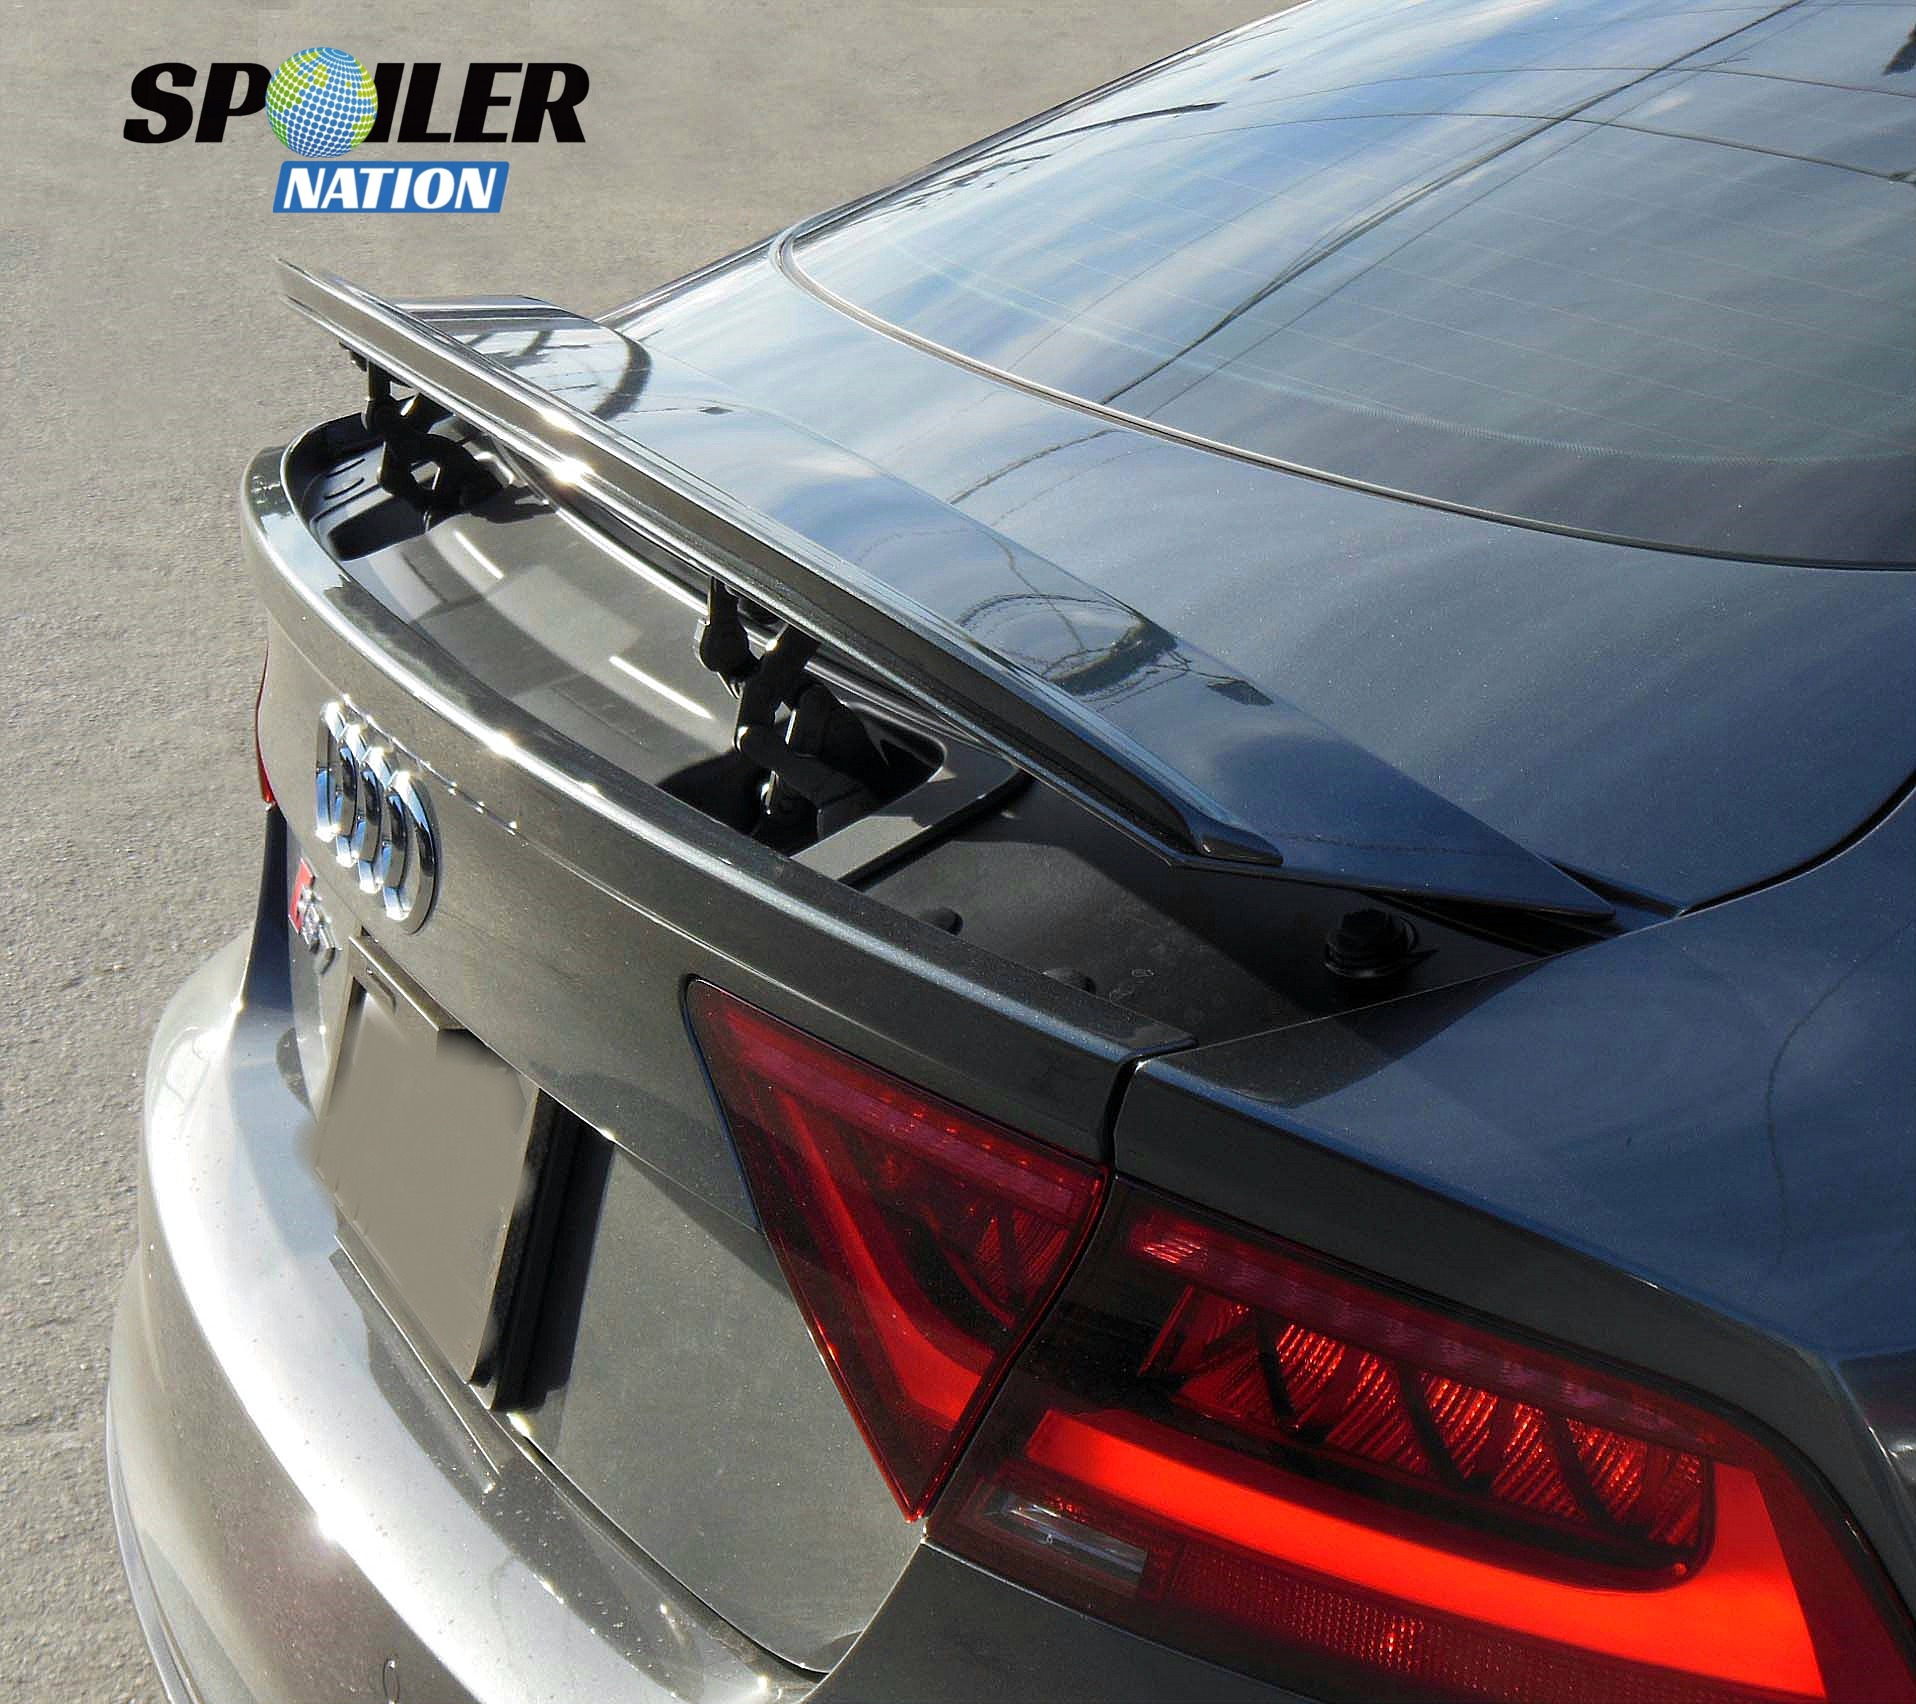 2017 Audi Rs 7 Camshaft: 2010-2017 Audi A7 / RS7 / S7 Euro Style Rear Lip Spoiler